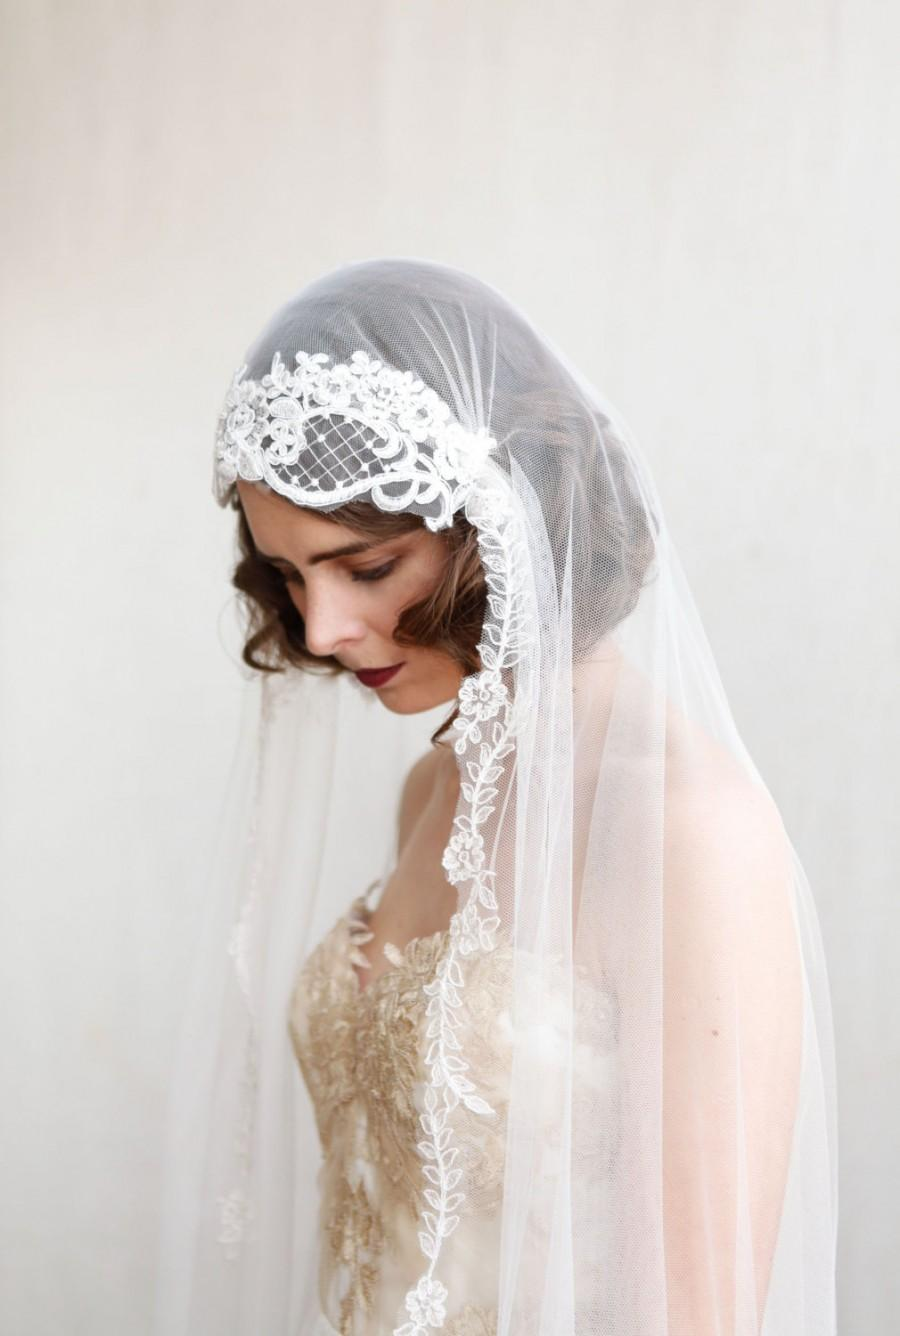 Statement Juliet Cap Veil With Lace1920s Style Ivory Chapel Length Art Deco Dramatic Wedding Cathedral